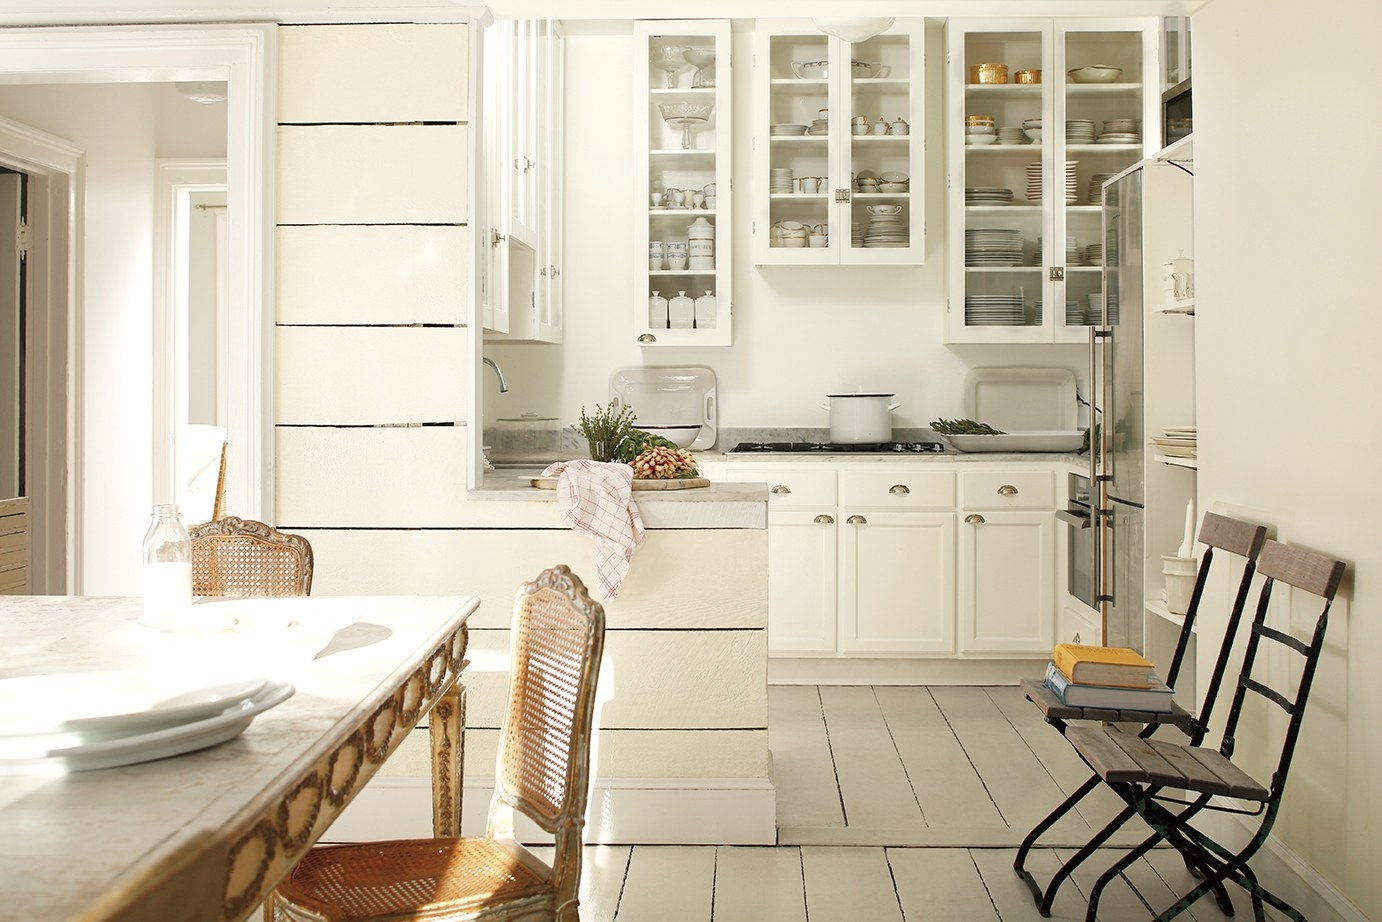 Best Benjamin Moore White Color For Kitchen Cabinets